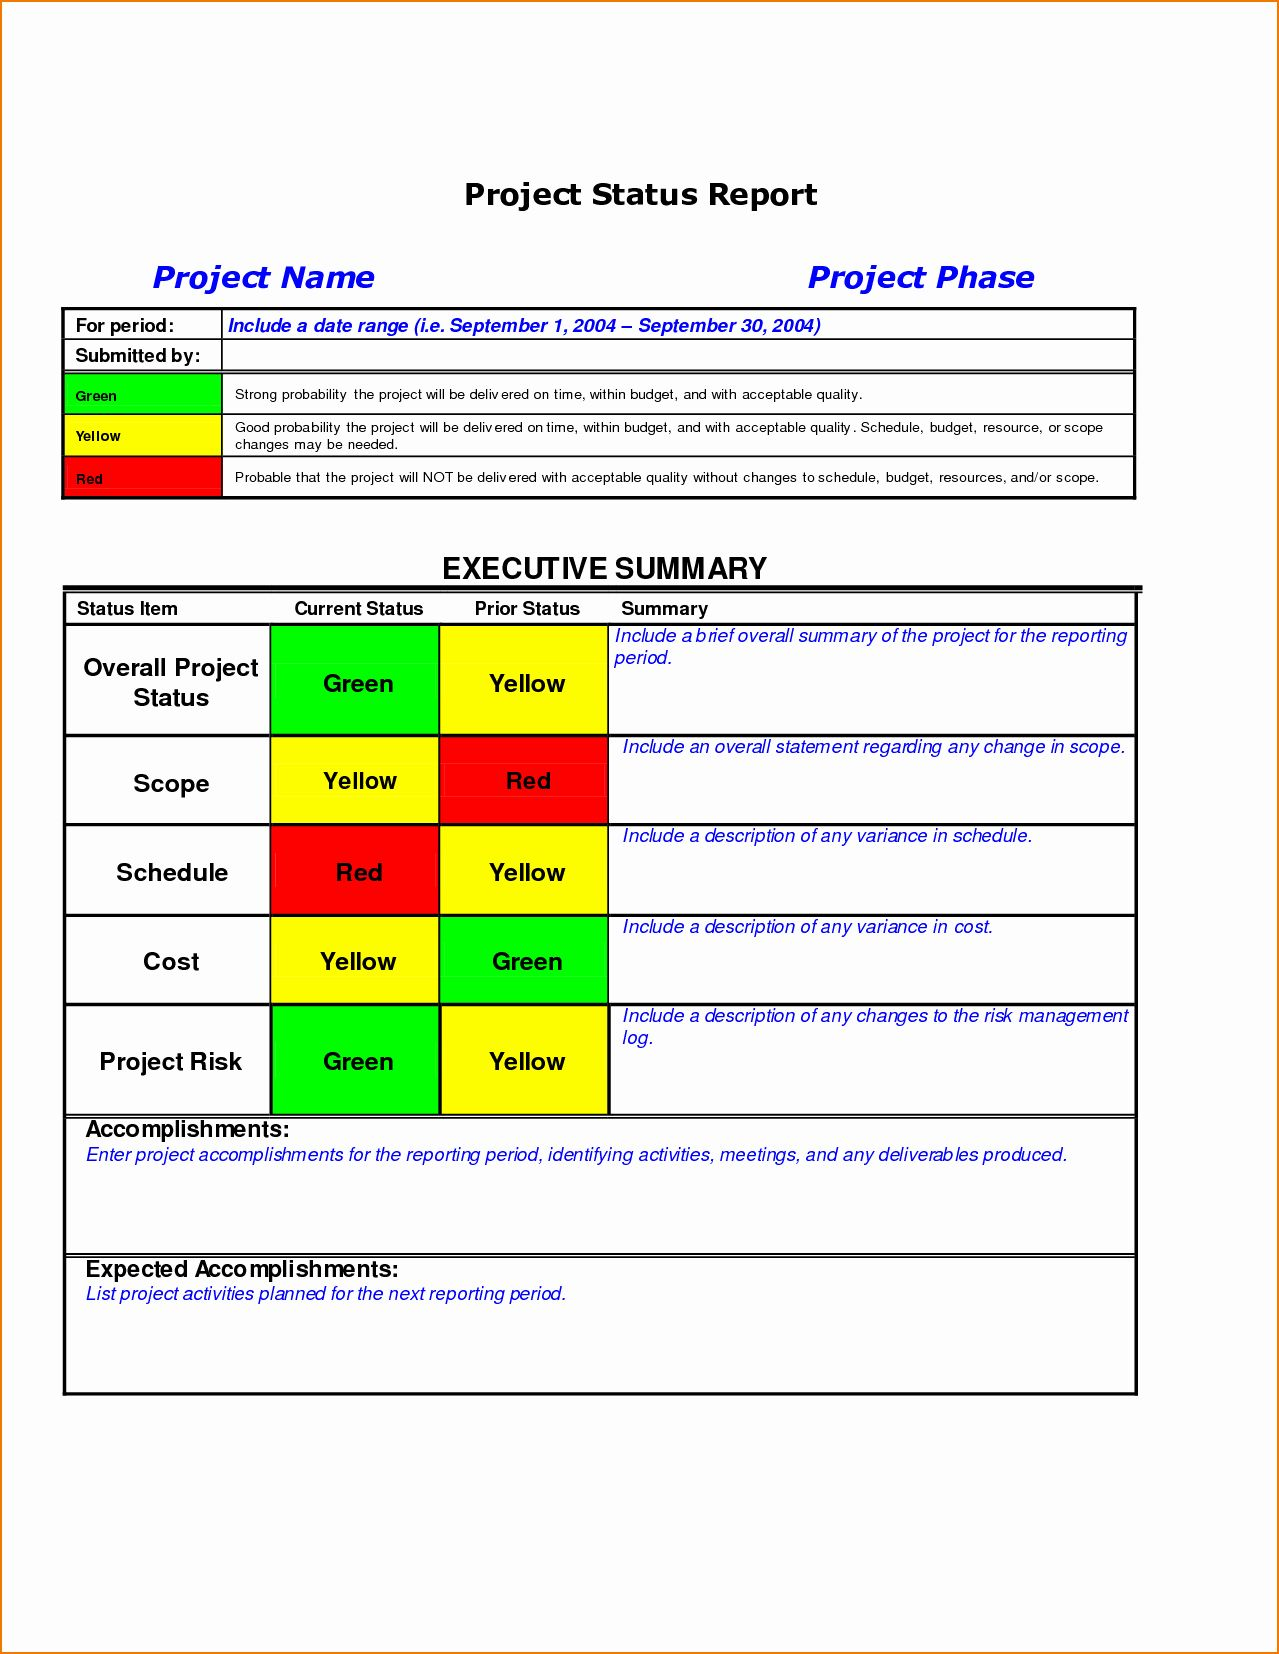 Project Executive Summary Template Word In 2020 Progress Report